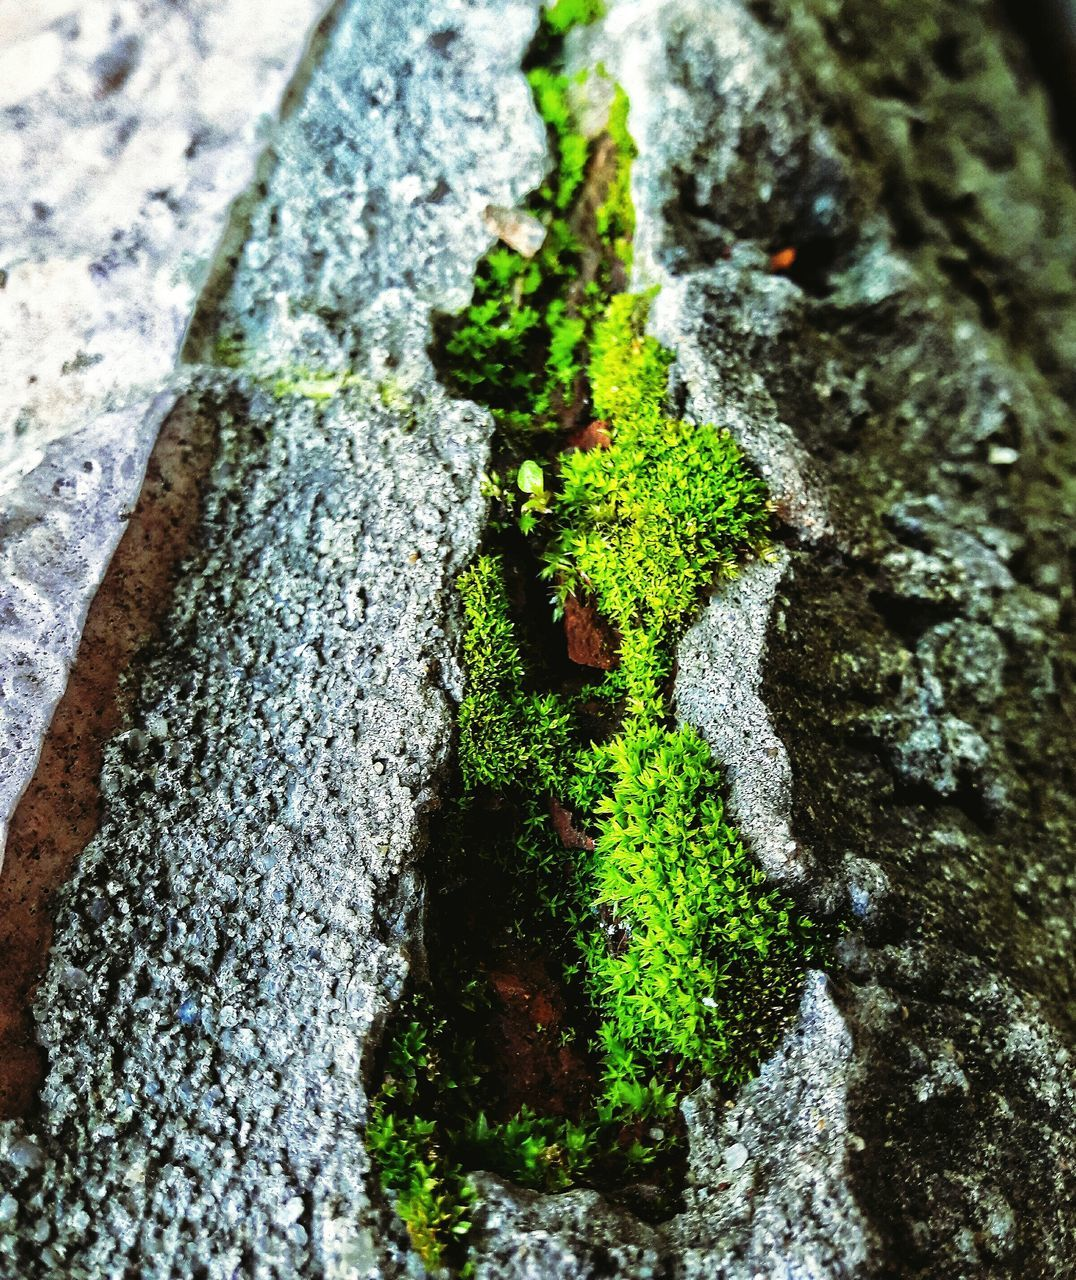 tree trunk, moss, textured, lichen, rough, close-up, bark, tree, growth, day, fungus, nature, no people, outdoors, green color, focus on foreground, beauty in nature, toadstool